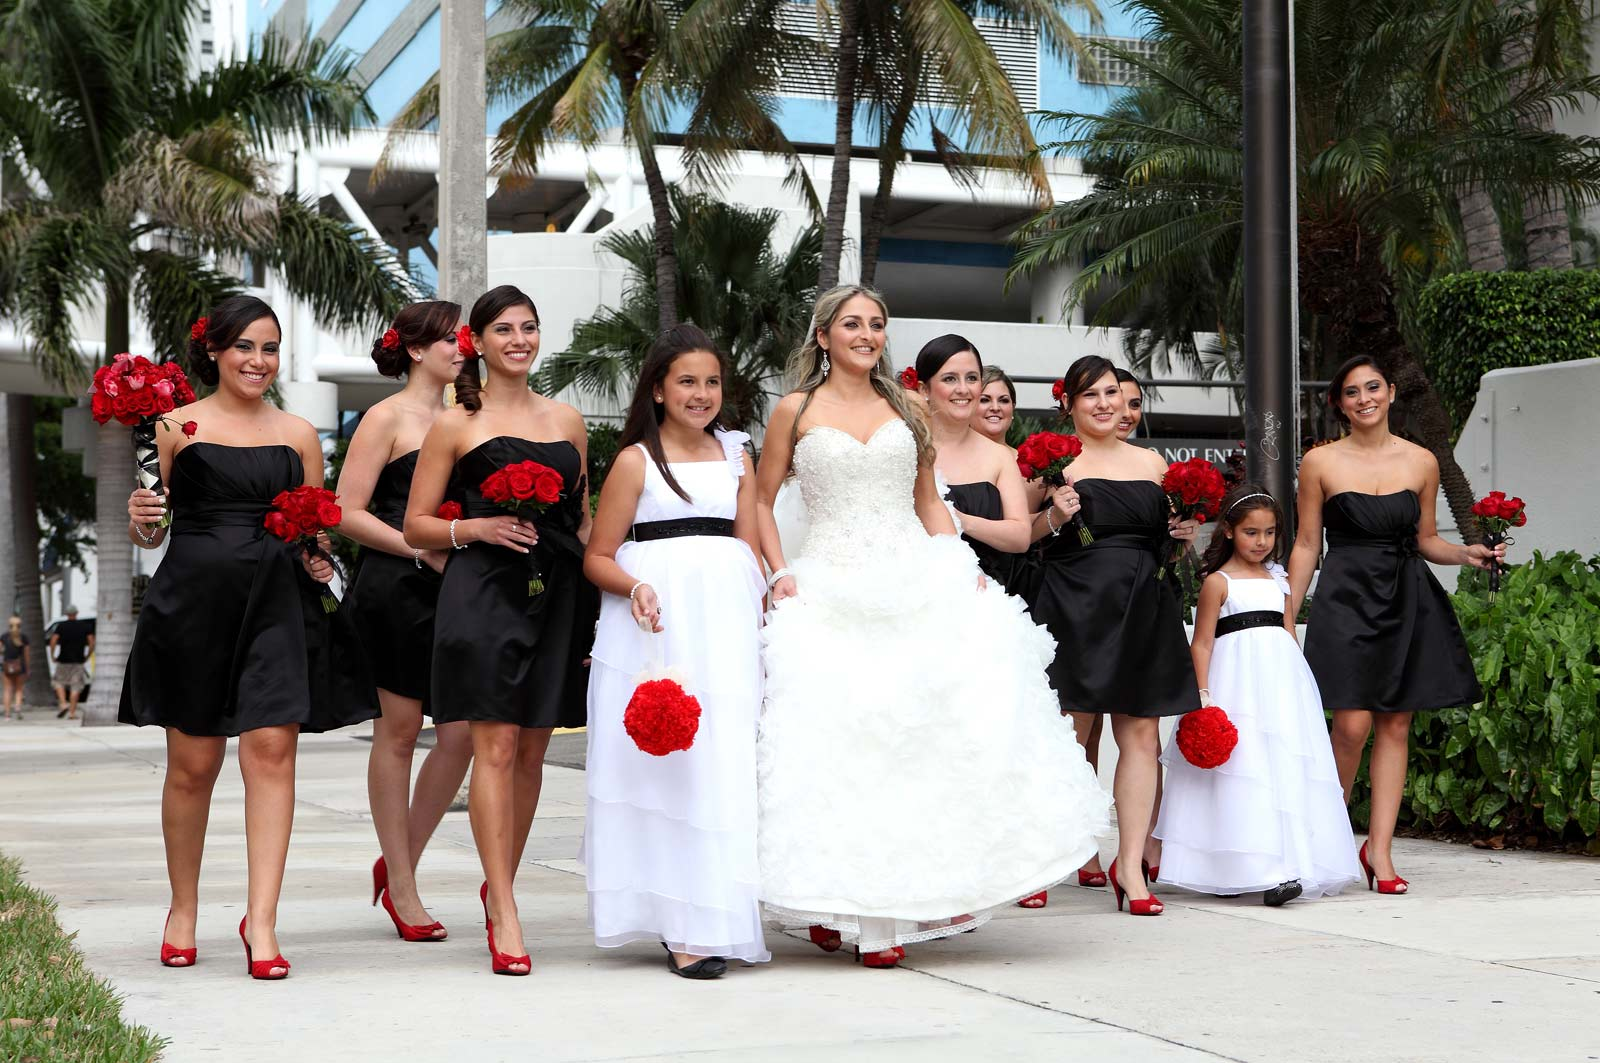 Bridesmaids in Black Dress with Flower Girls walking with beautiful bride